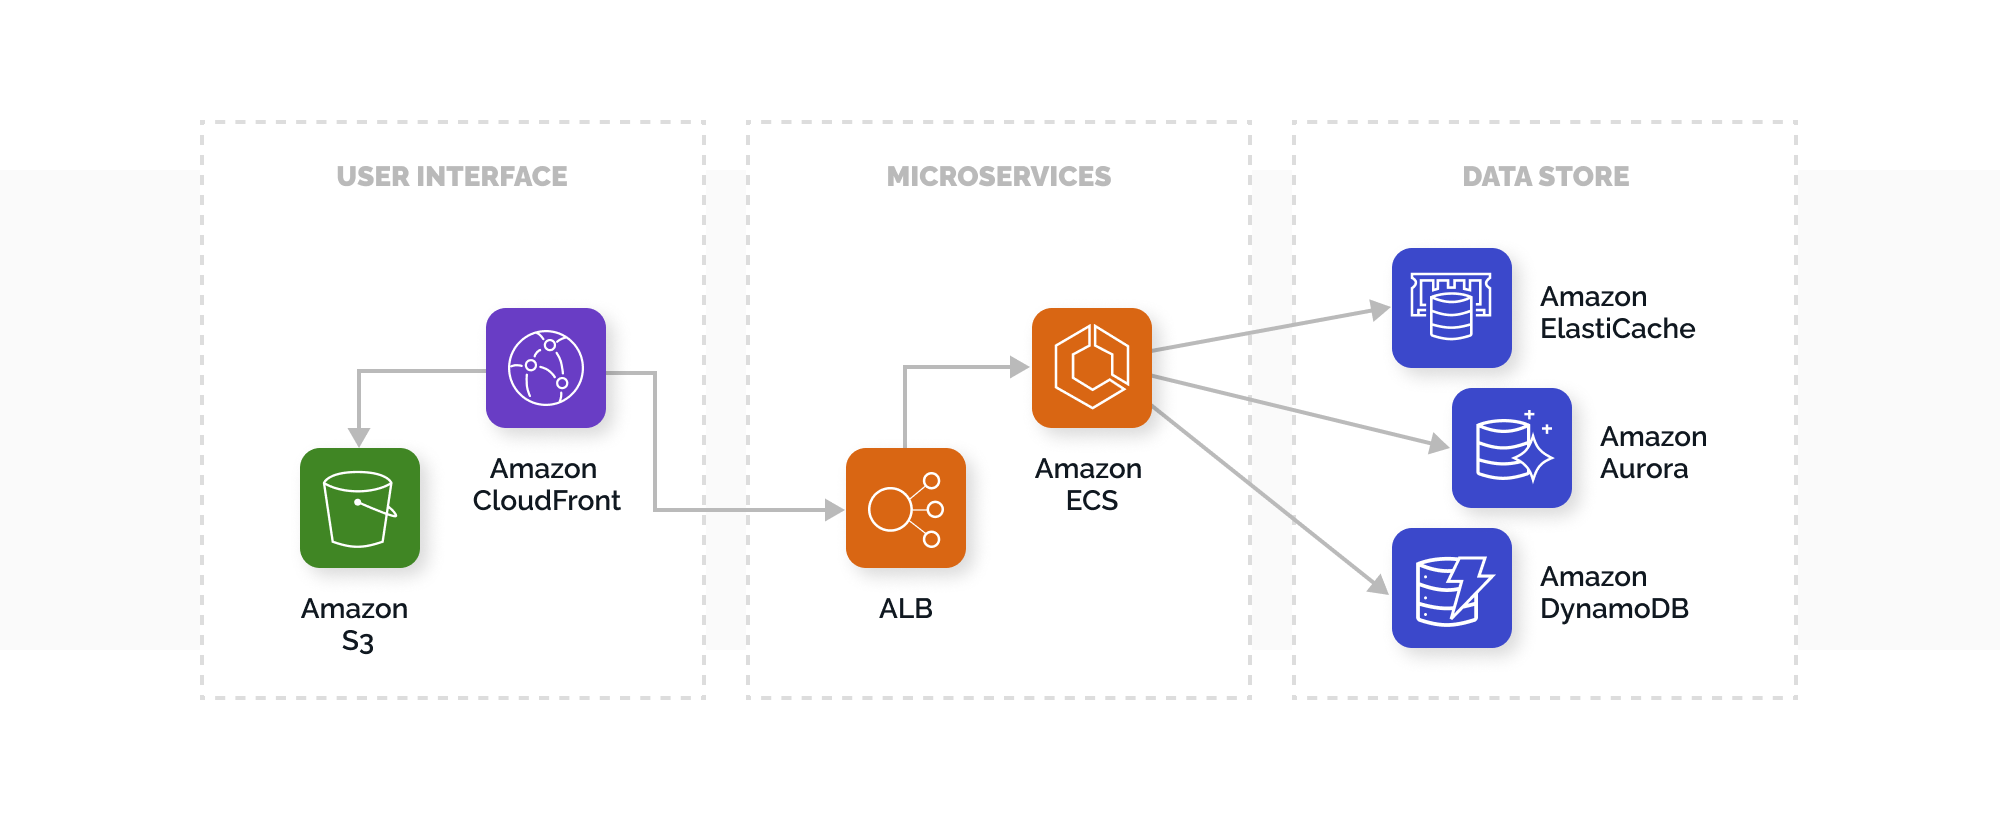 Working Principle of the Microservices Architecture on AWS | TechMagic.co